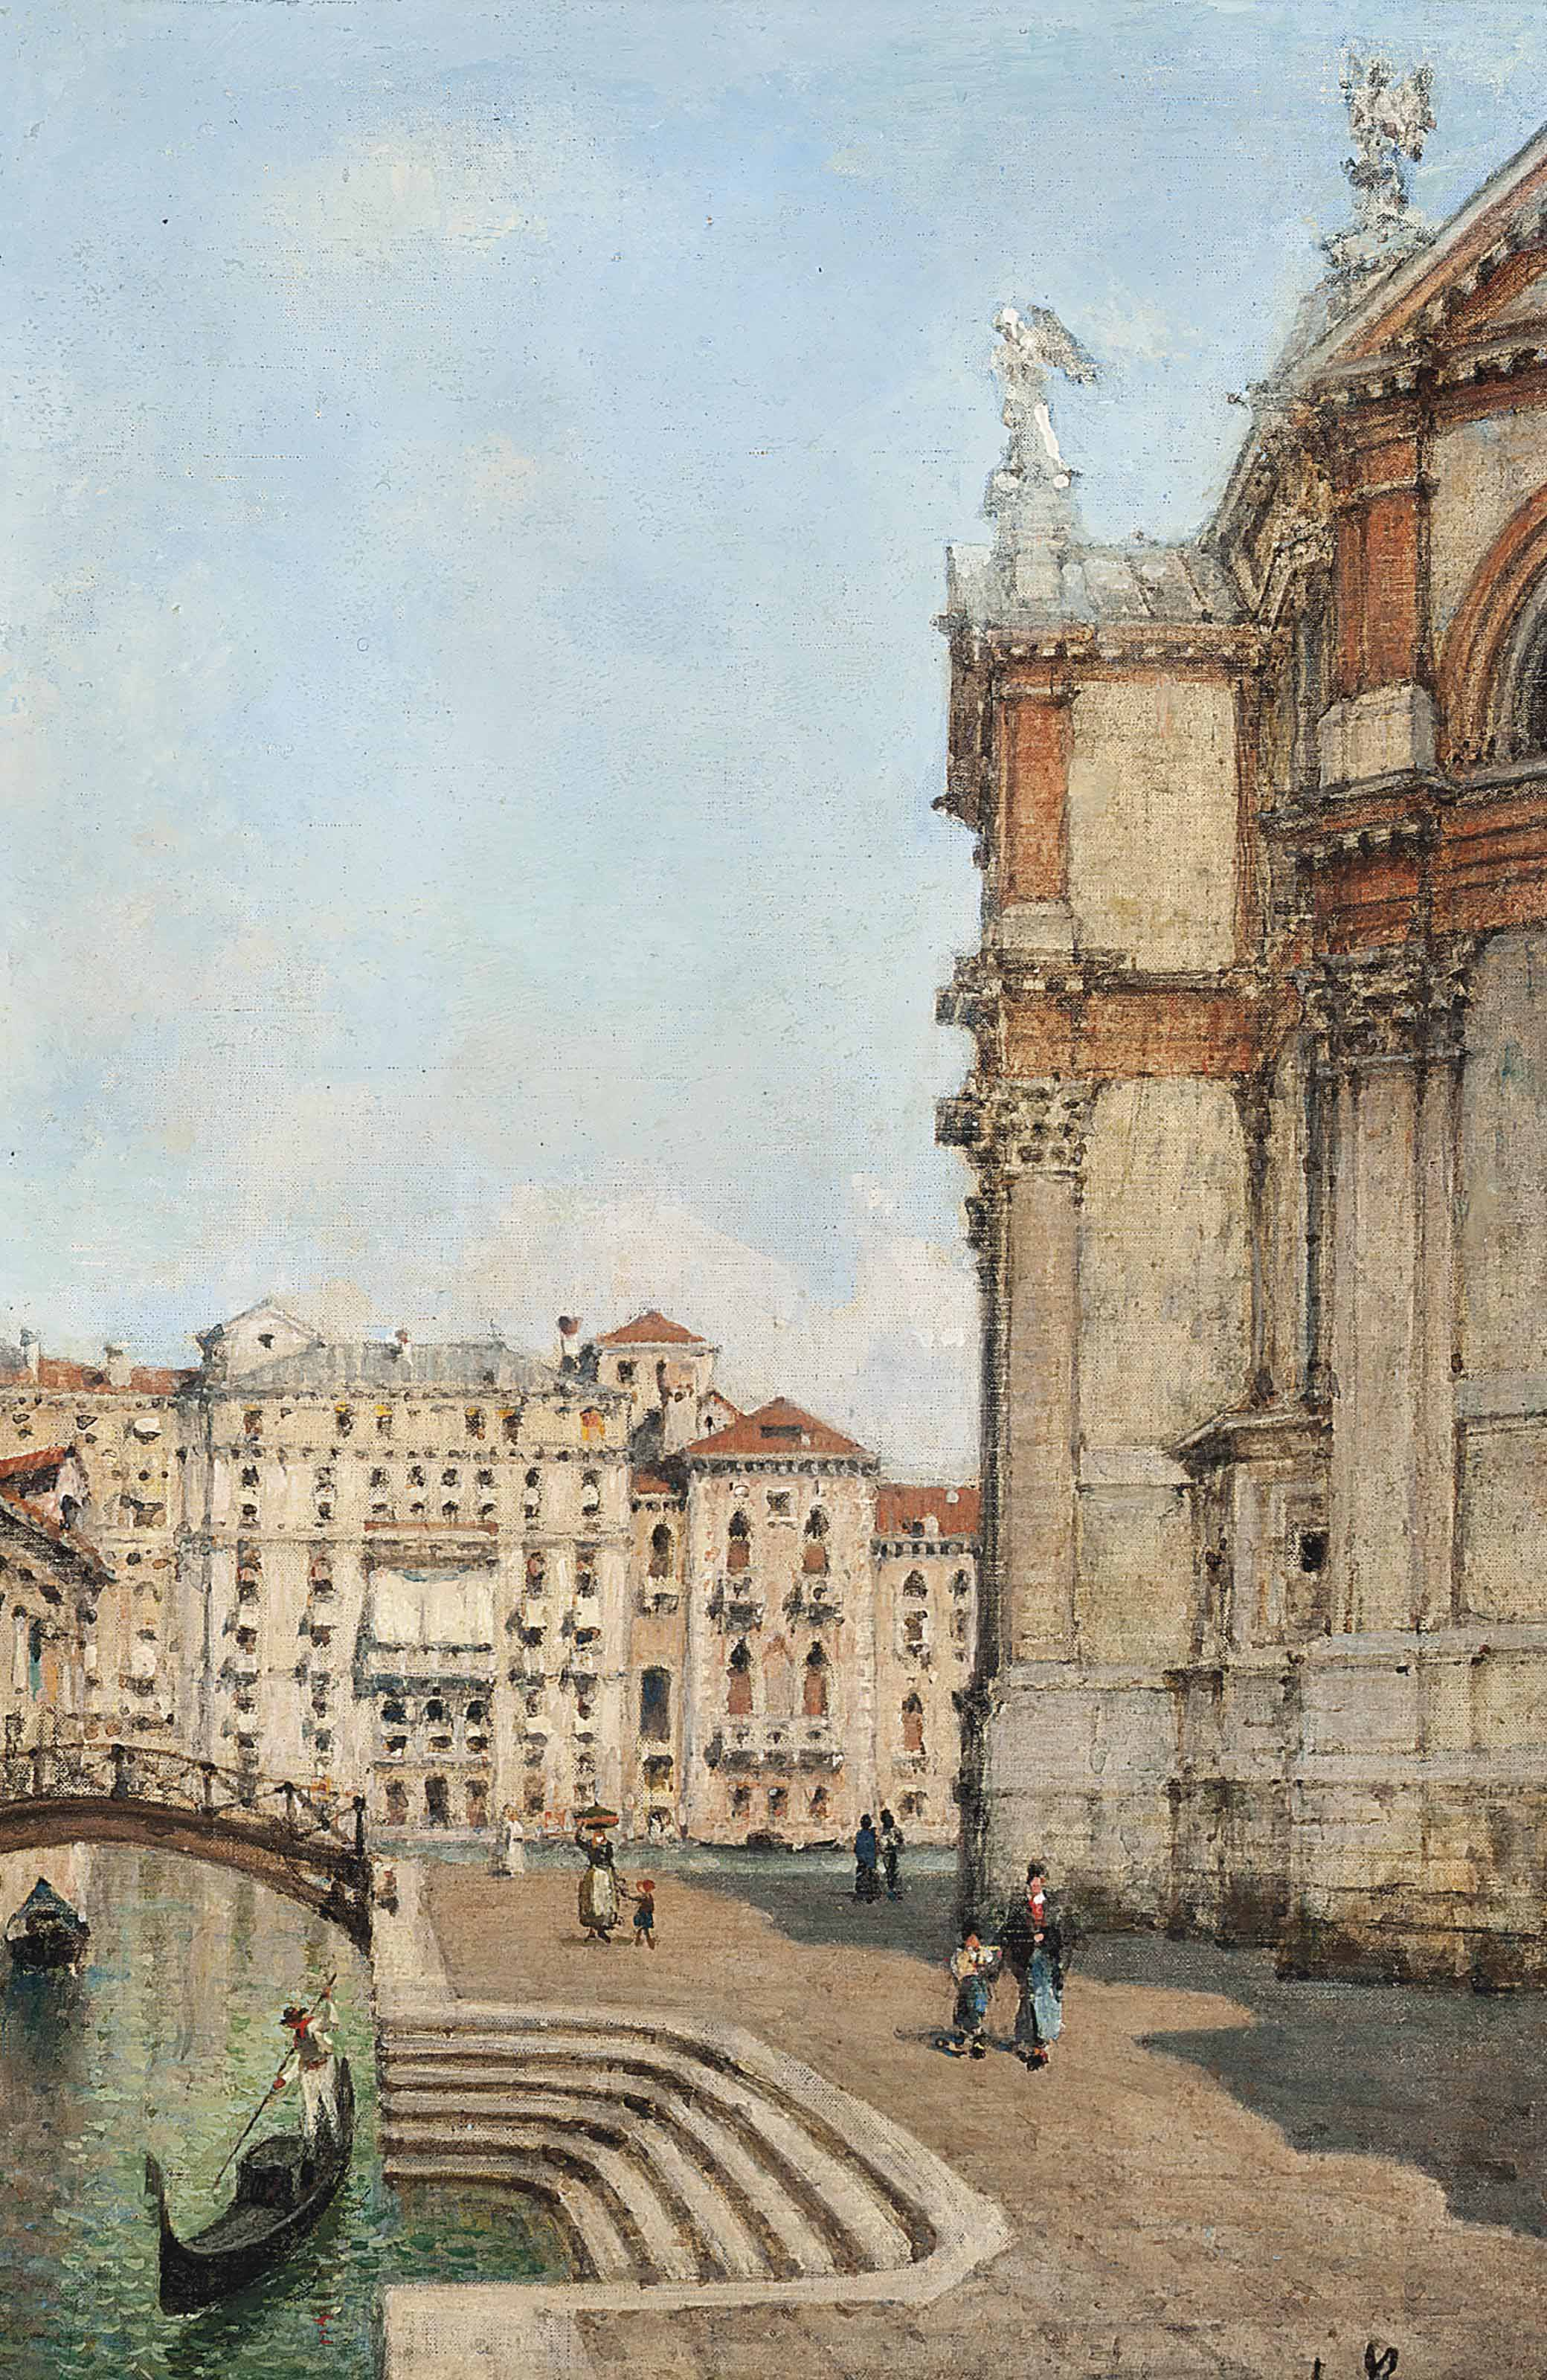 On the steps to the canal, Venice